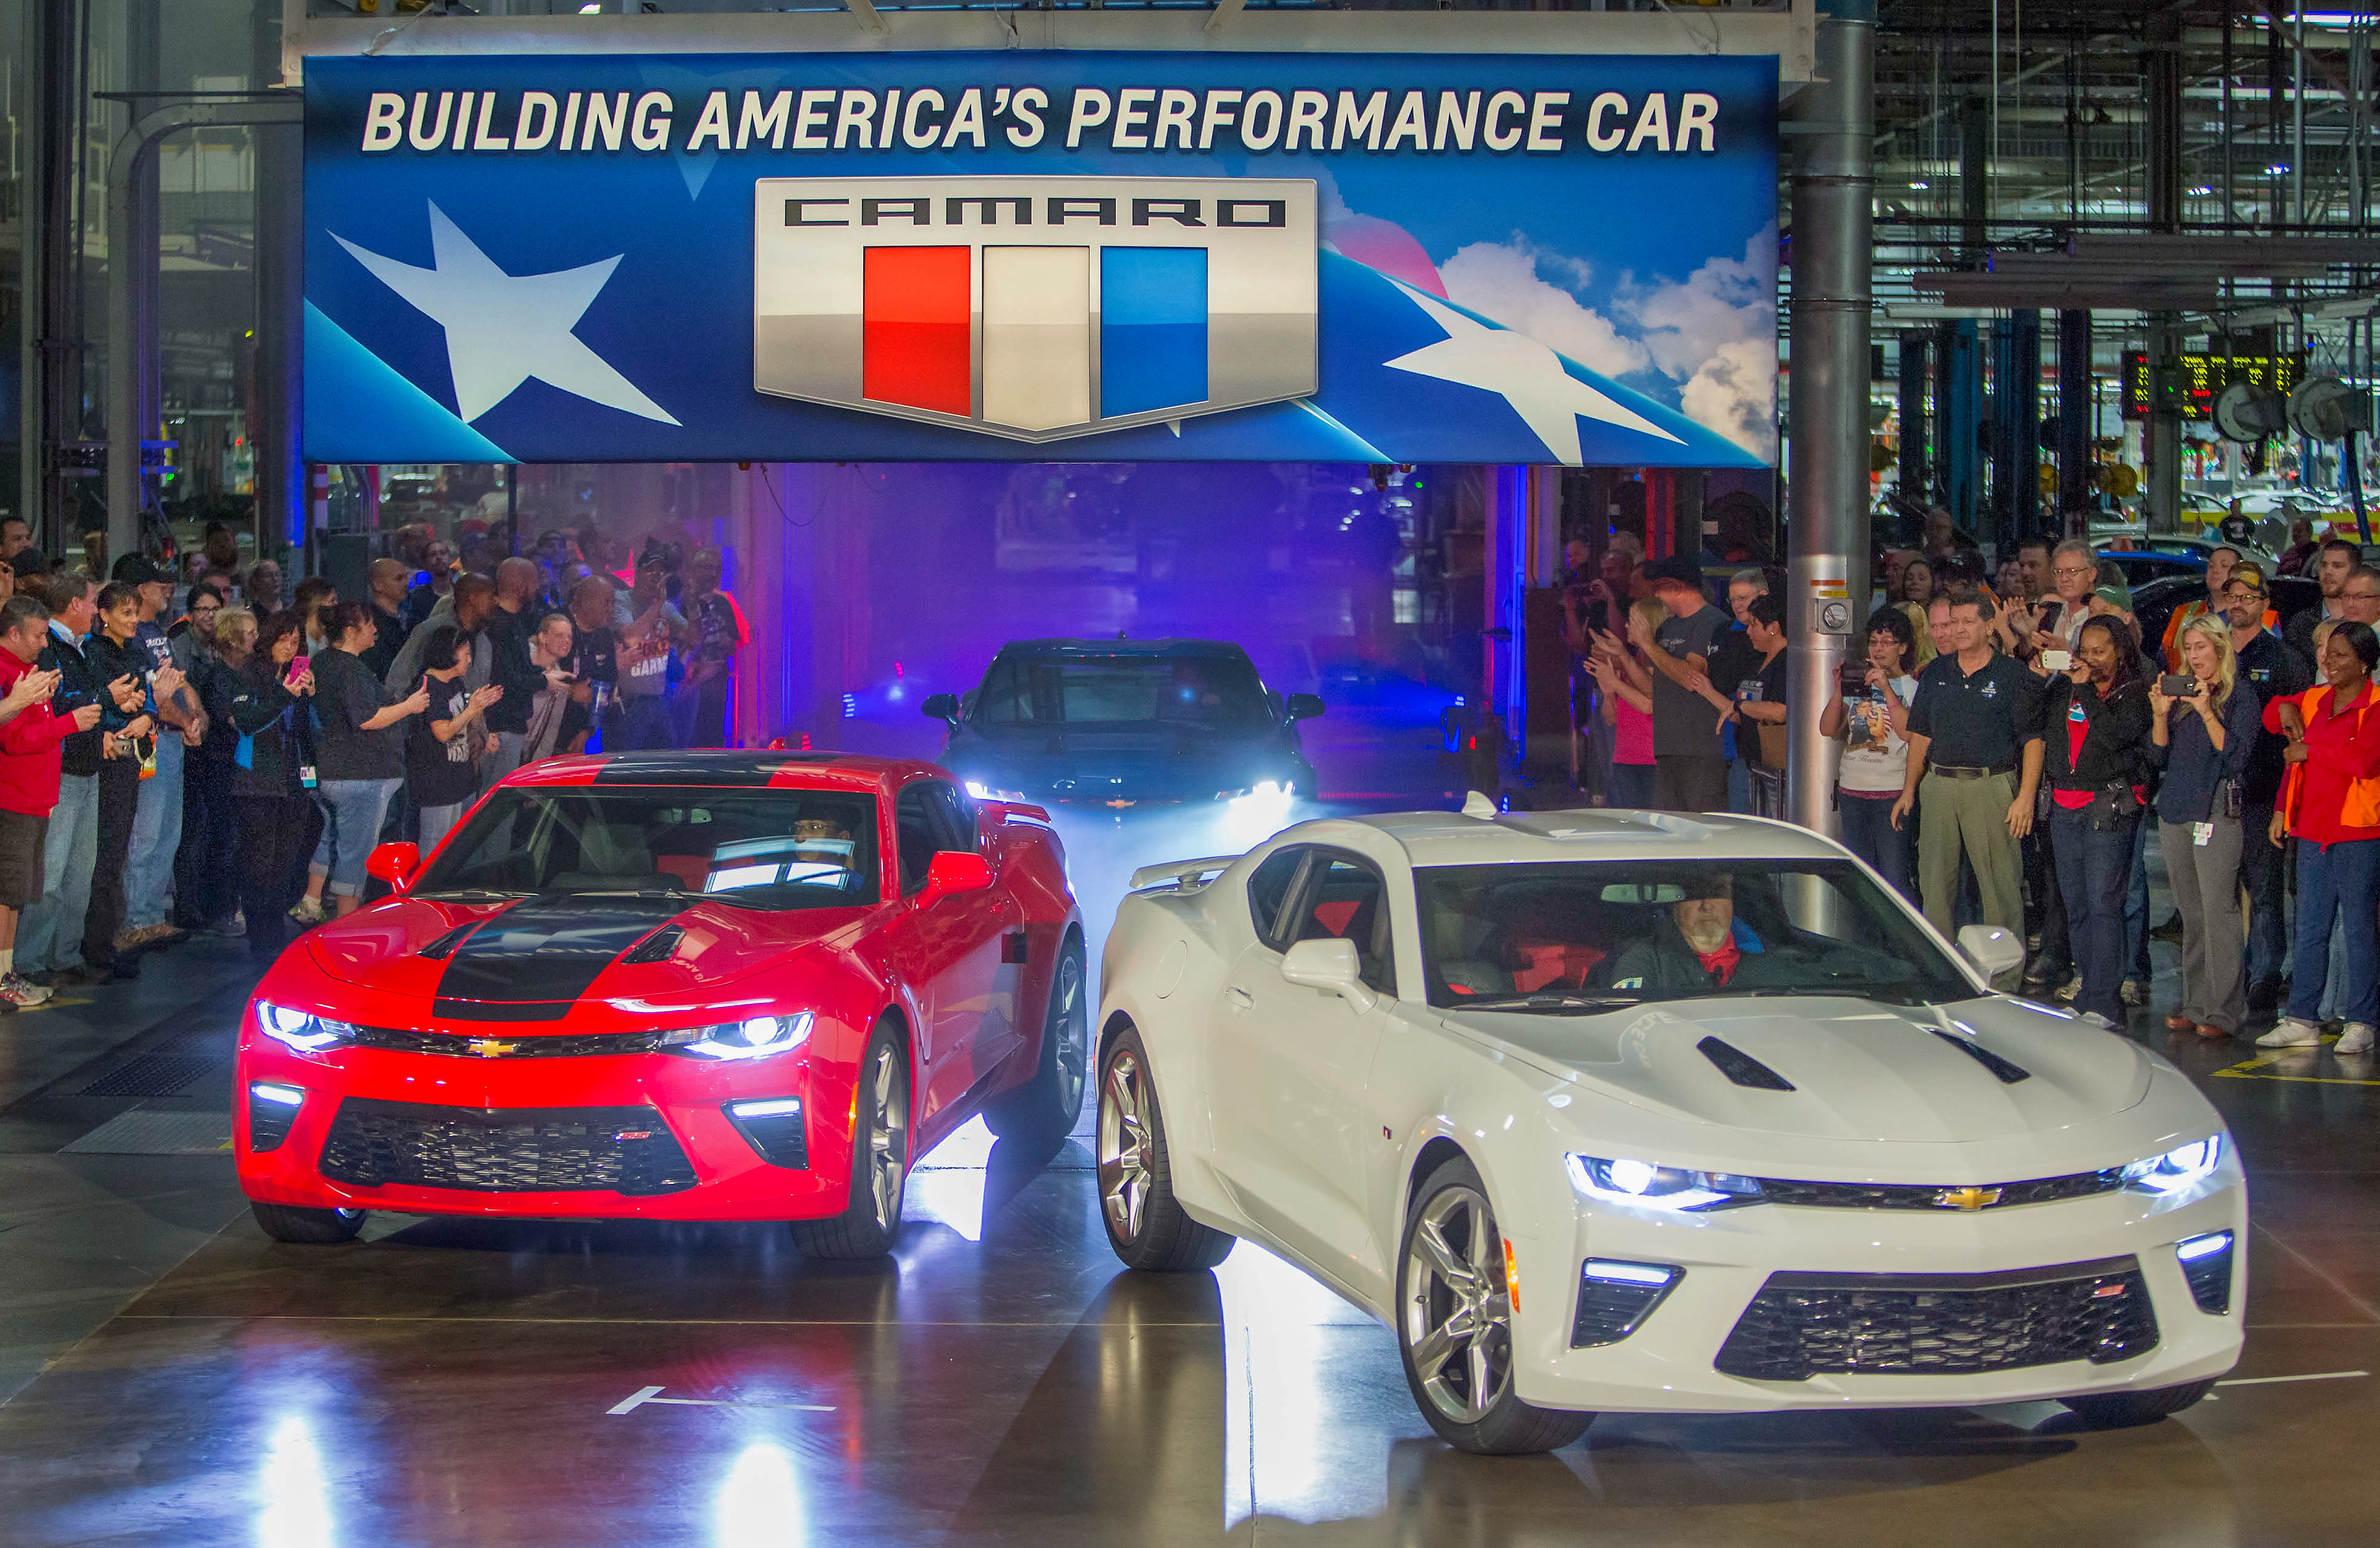 Chevrolet rolls out the 2016 Camaro Monday, October 26, 2015, as it announces the Camaro will begin shipping to dealers from General Motors' Lansing Grand River Assembly later this week in Lansing, Michigan. The first vehicles delivered to customers will be coupes – SS or LT models with the 3.6L V-6. The Camaro Convertible and models with the 2.0L Turbo engine will begin shipping in early 2016. (Photo by Jeffrey Sauger for Chevrolet)